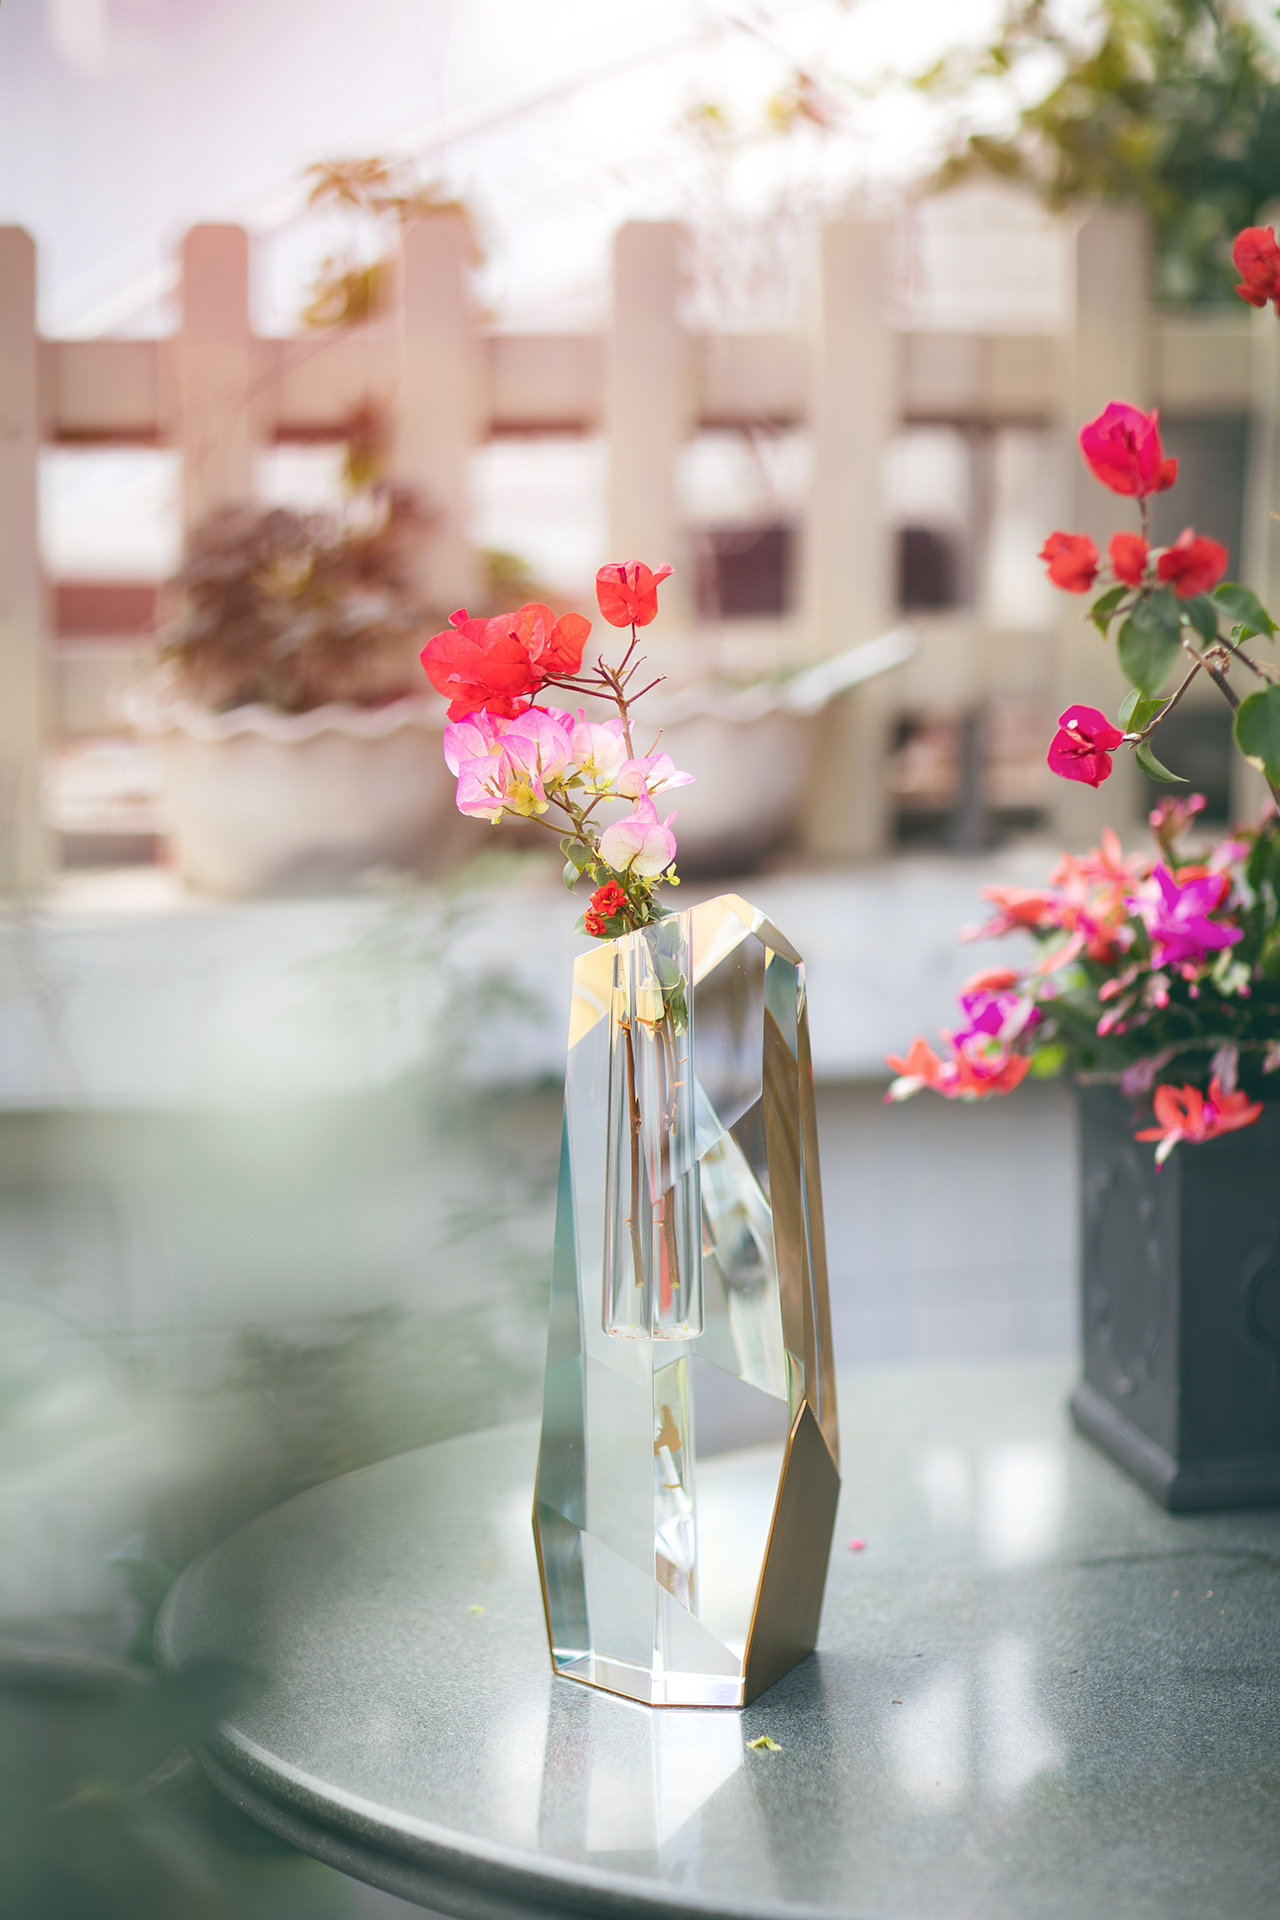 Tall Crystal Brass Vase With Flowers 2